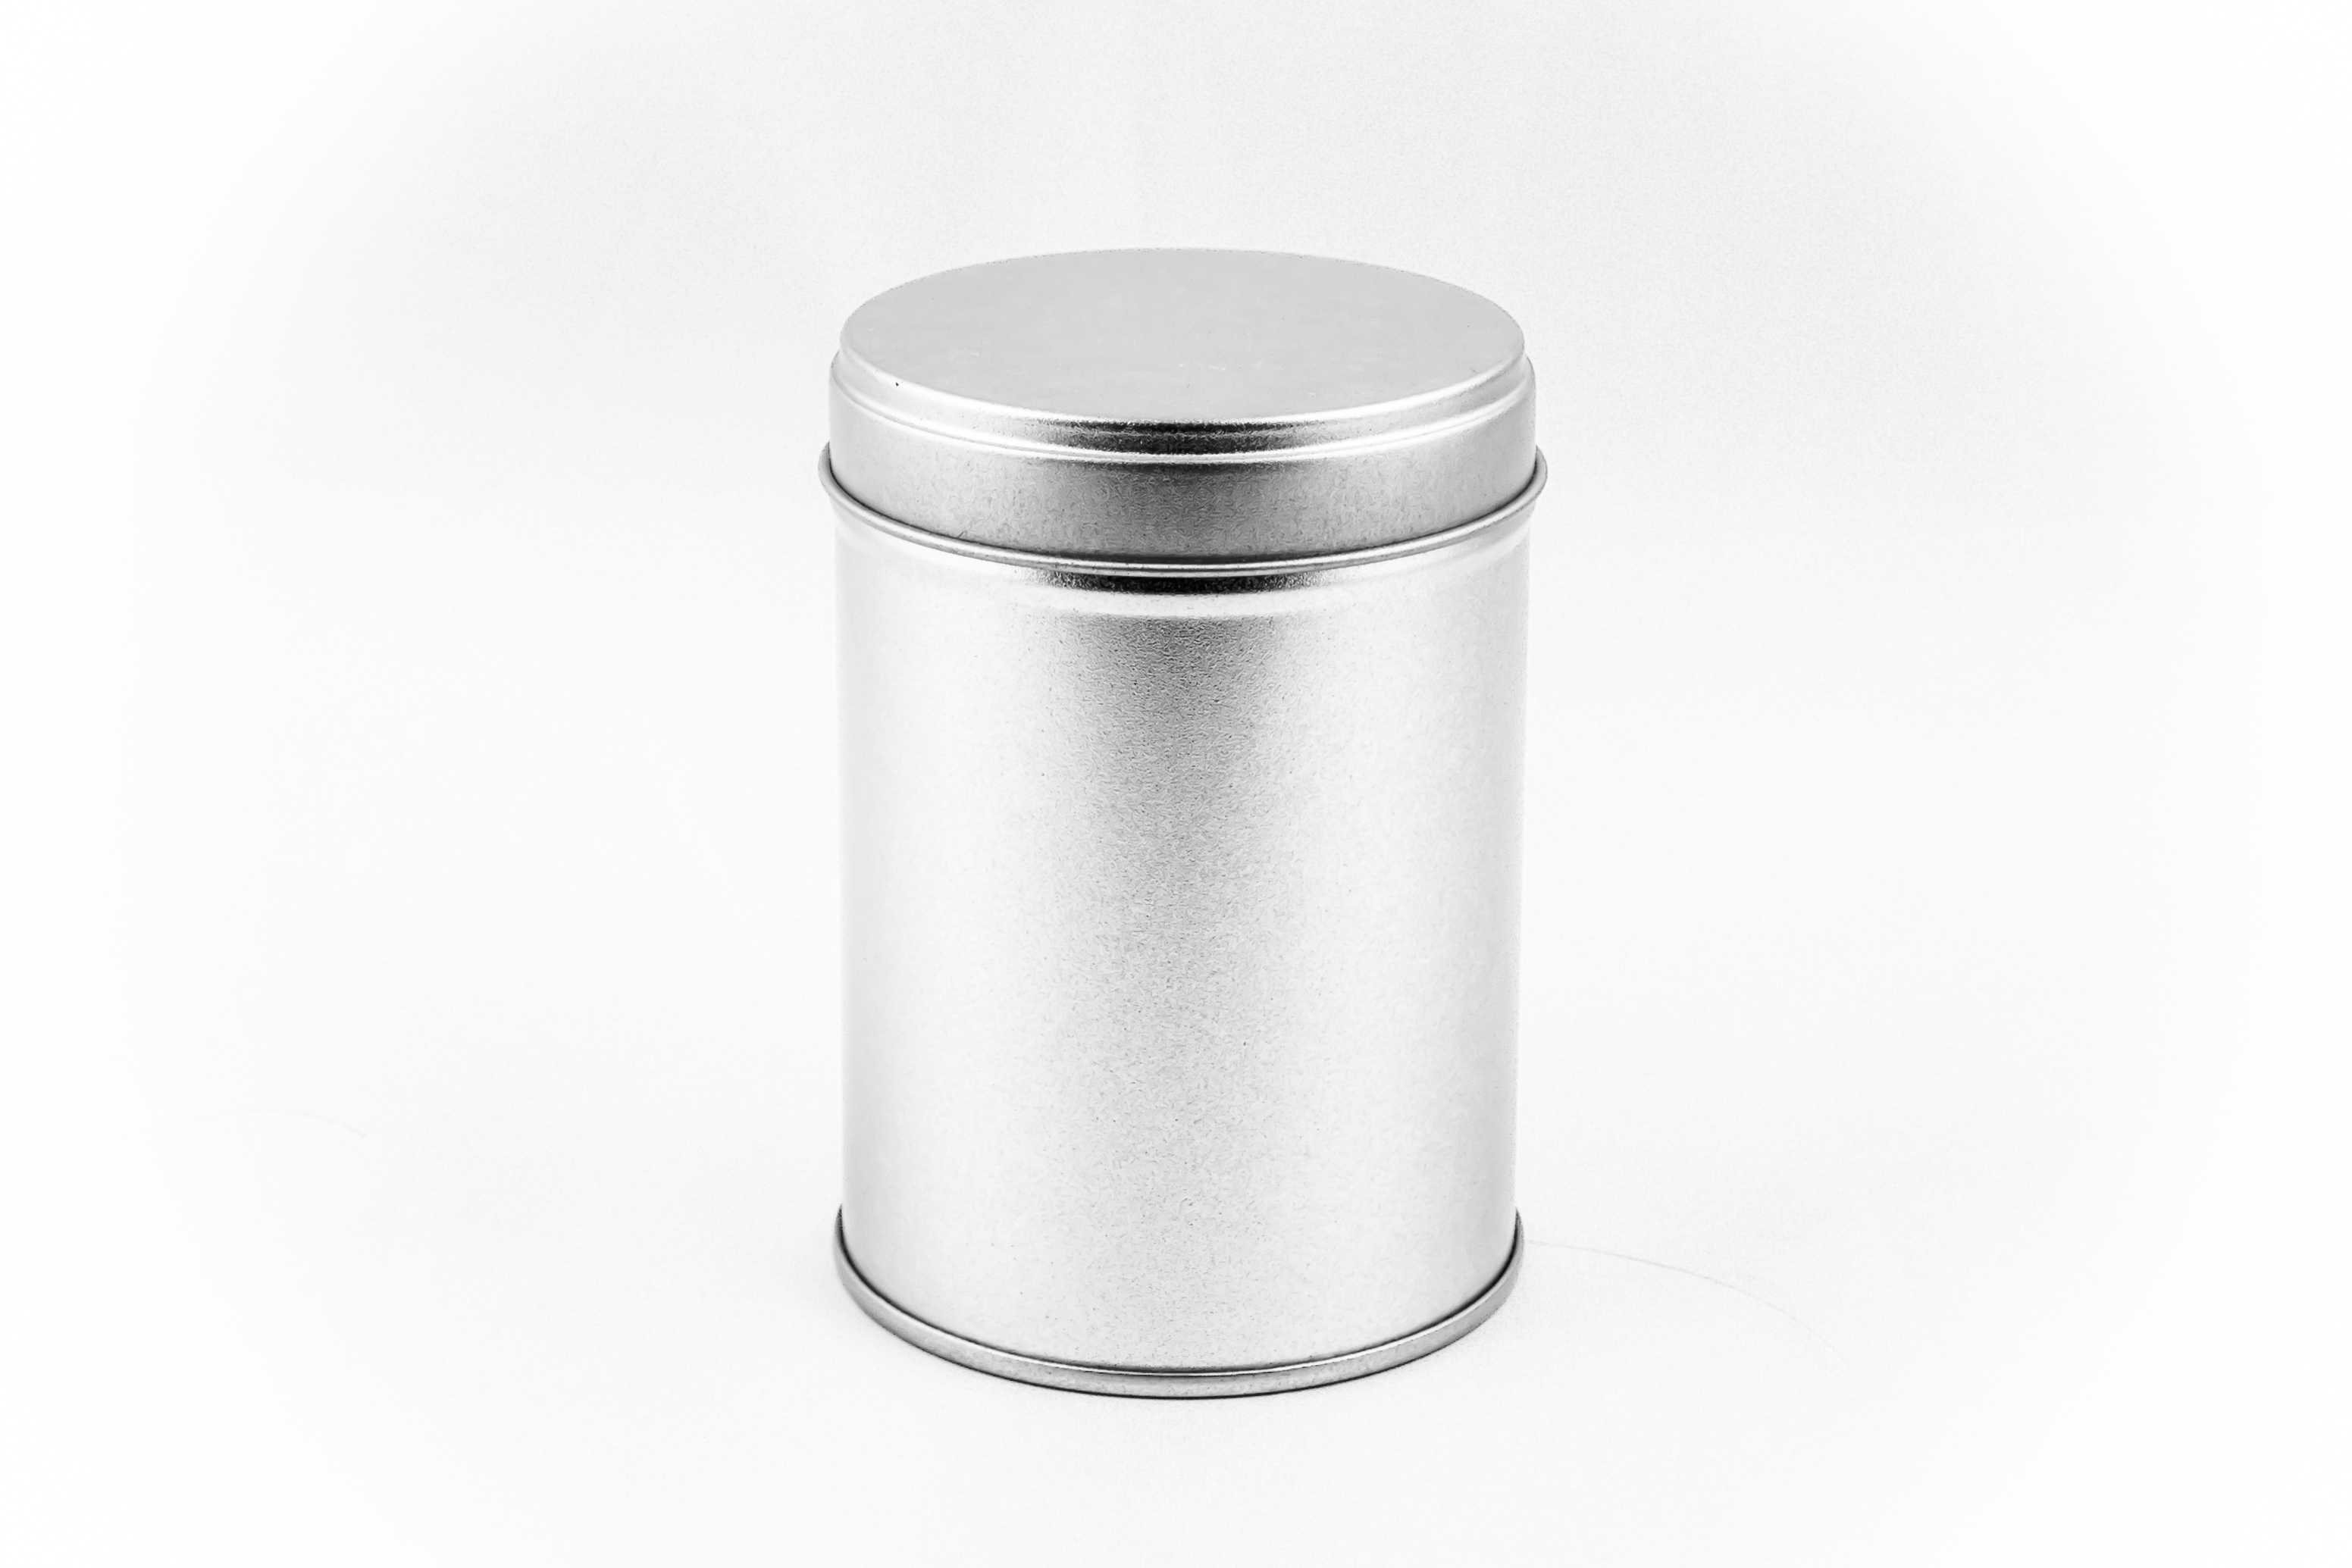 Spice - and tea tinbox with aroma seal